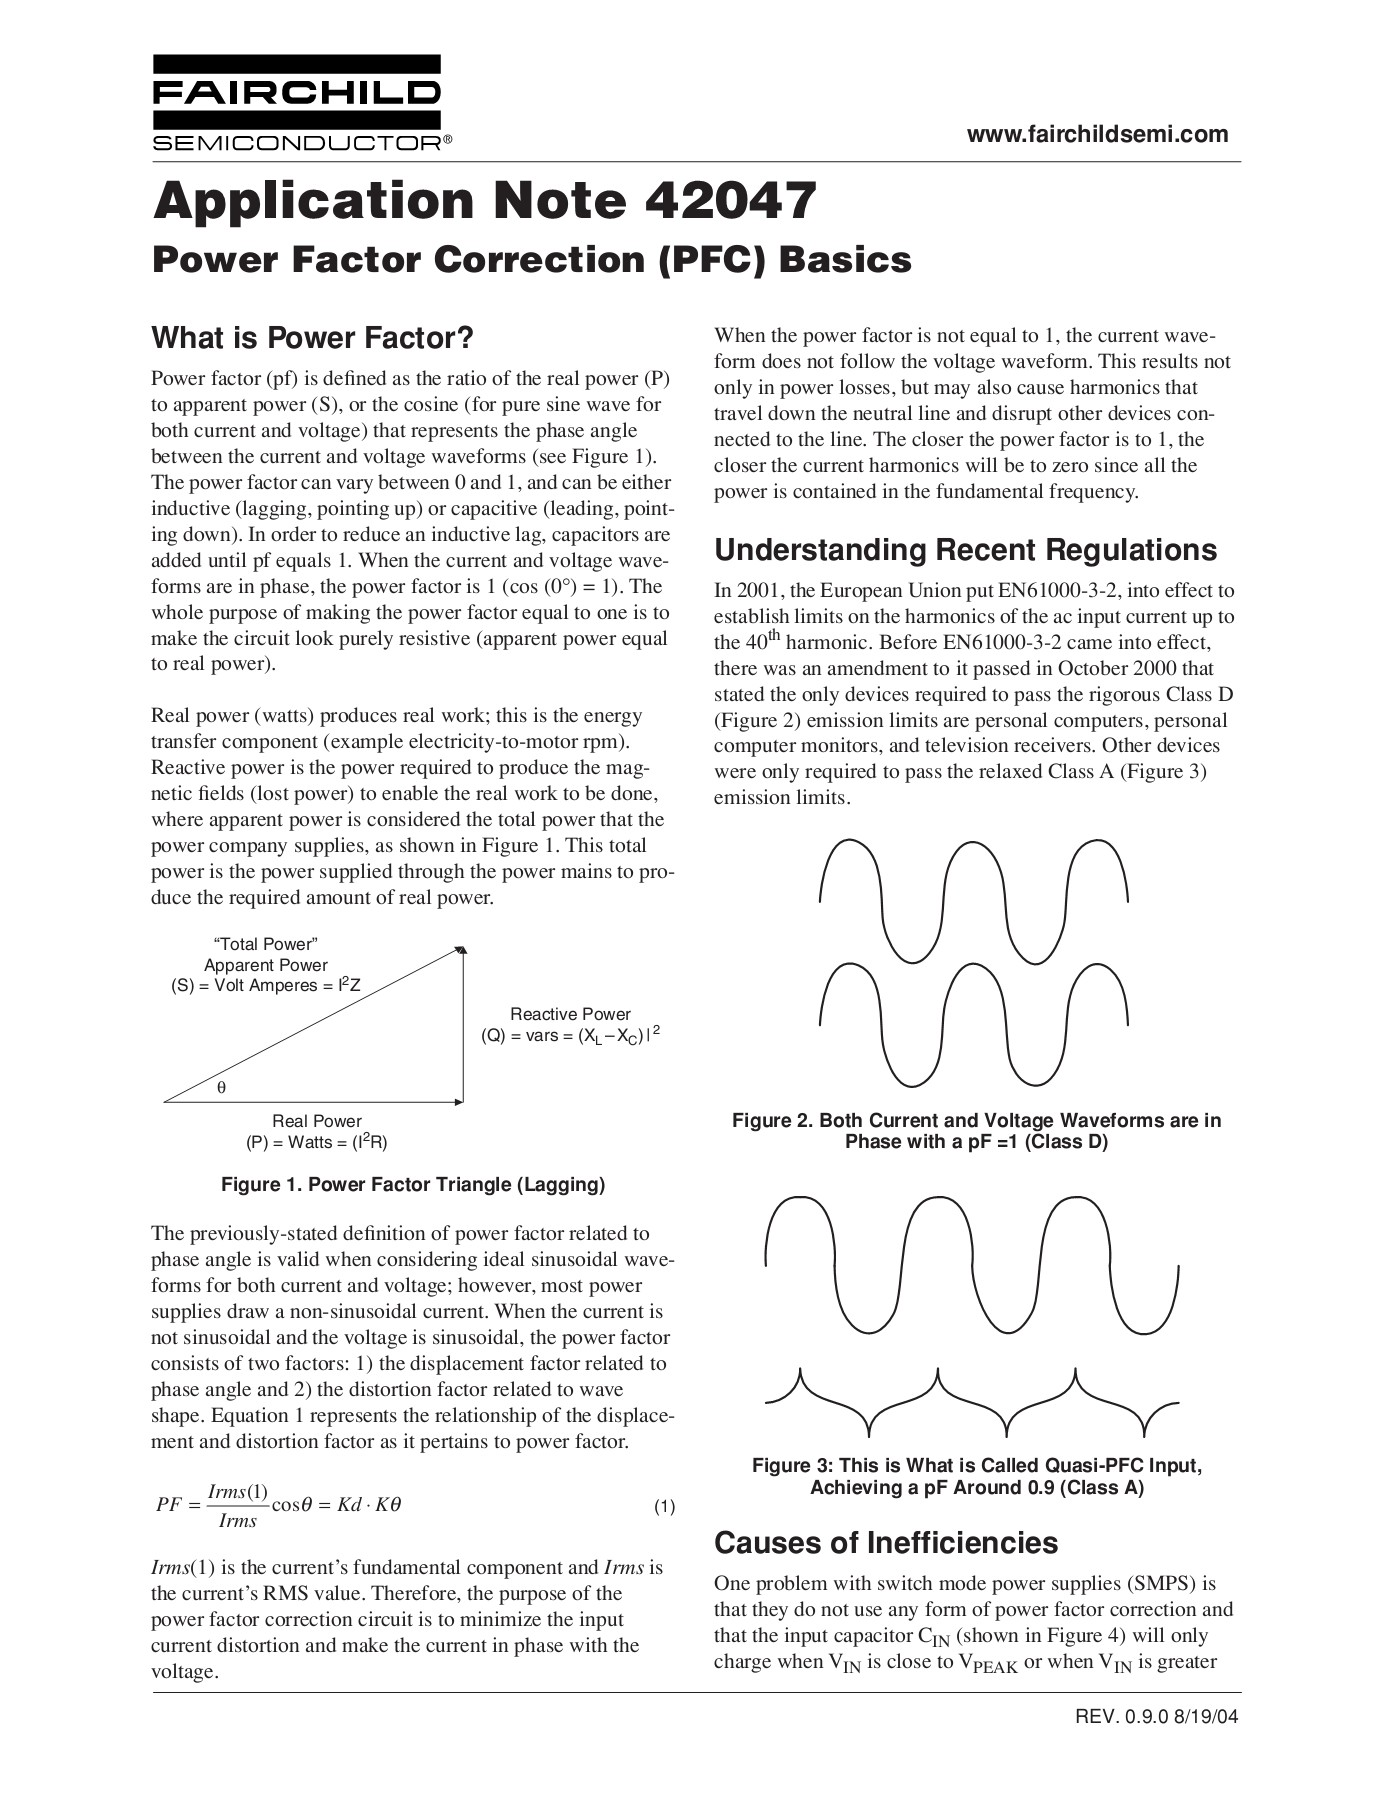 Power Factor Correction (PFC) Basics - Fairchild Pages 1 - 11 - Text